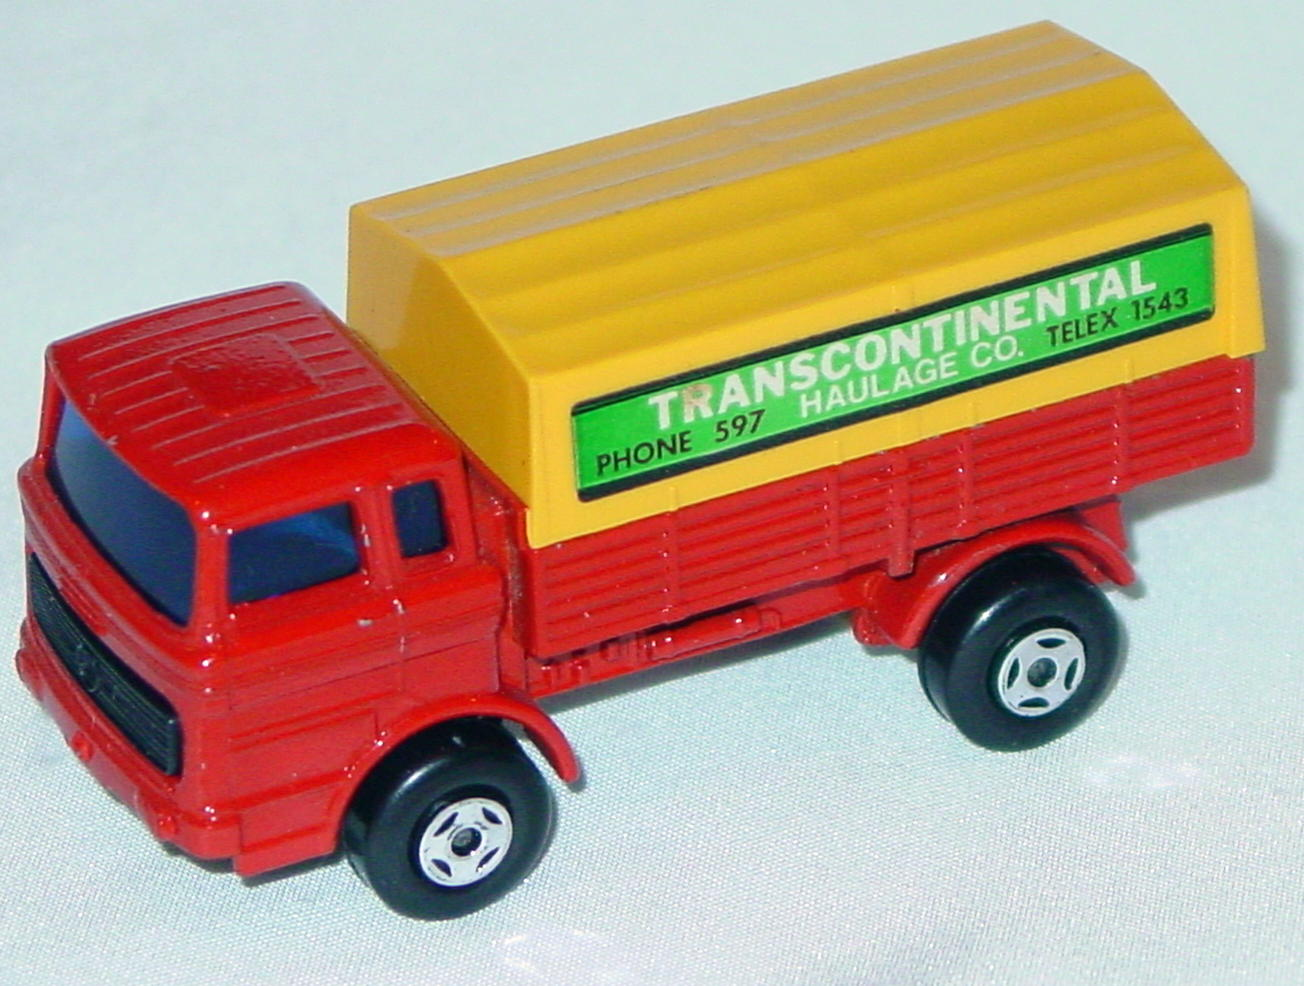 Lesney SuperFast 01 A 6 - Merc Truck Red and org-yellow Transcon with 1978 on base